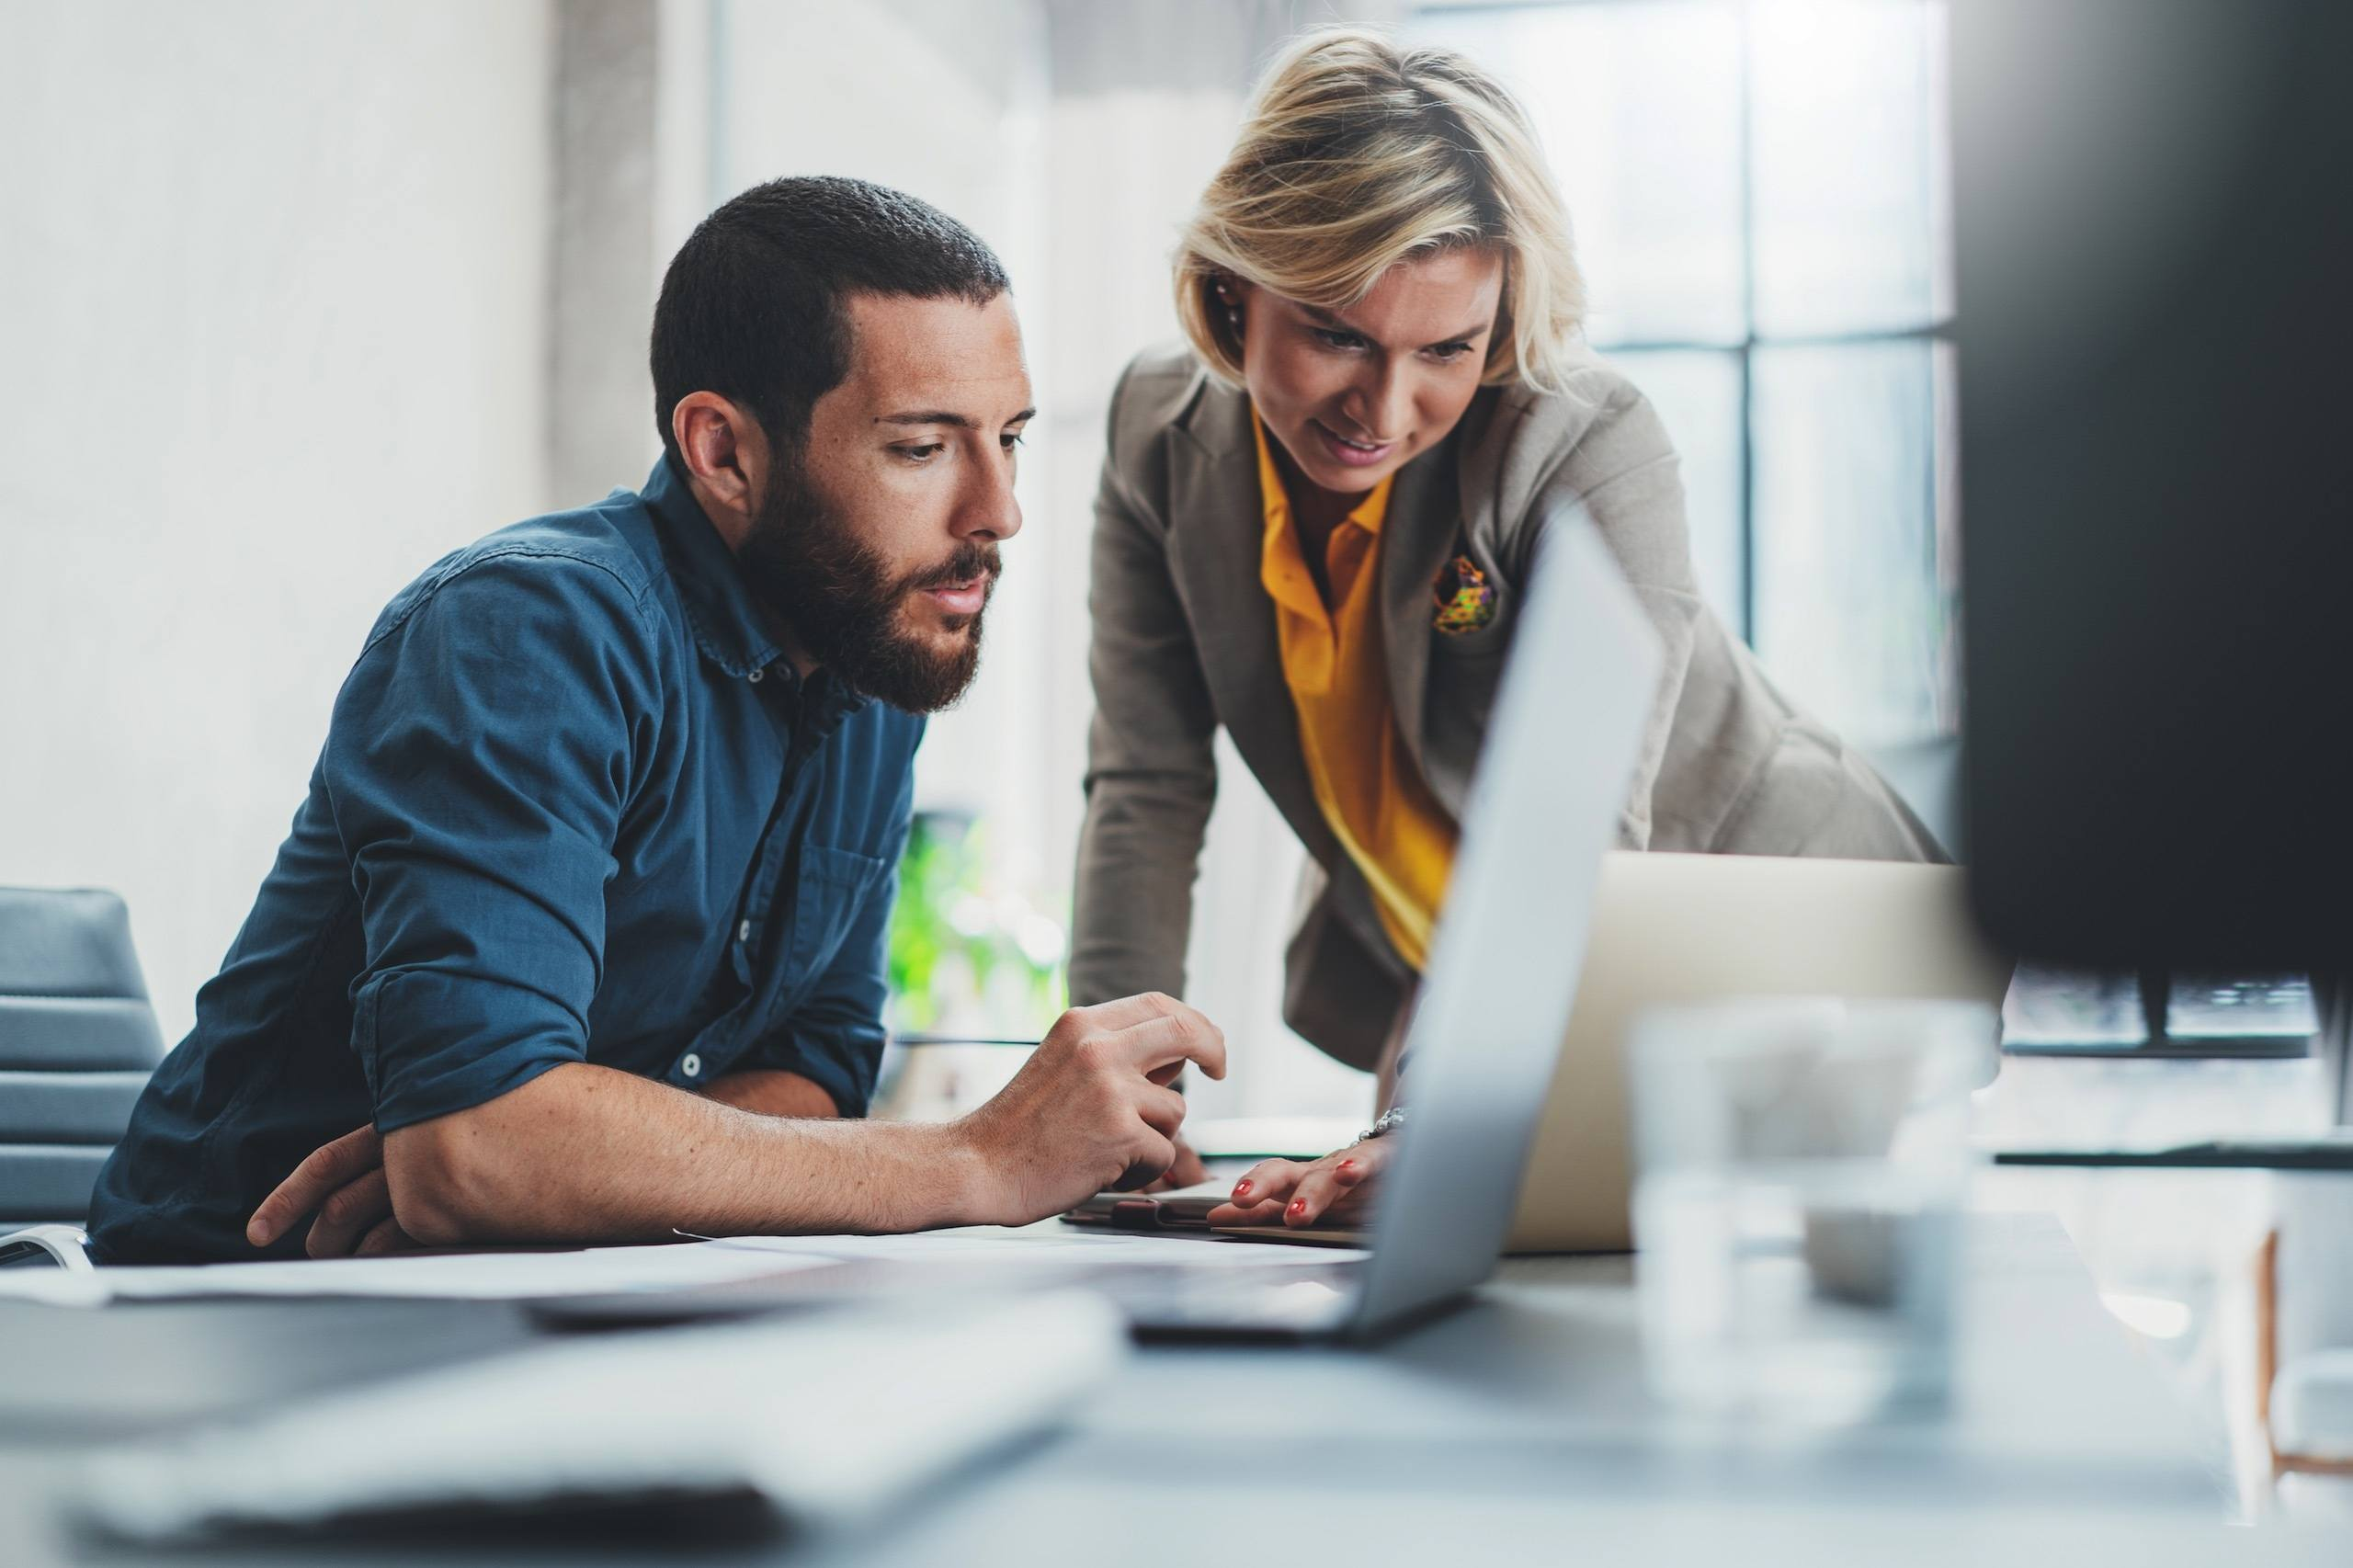 Man and woman looking at loan on computer